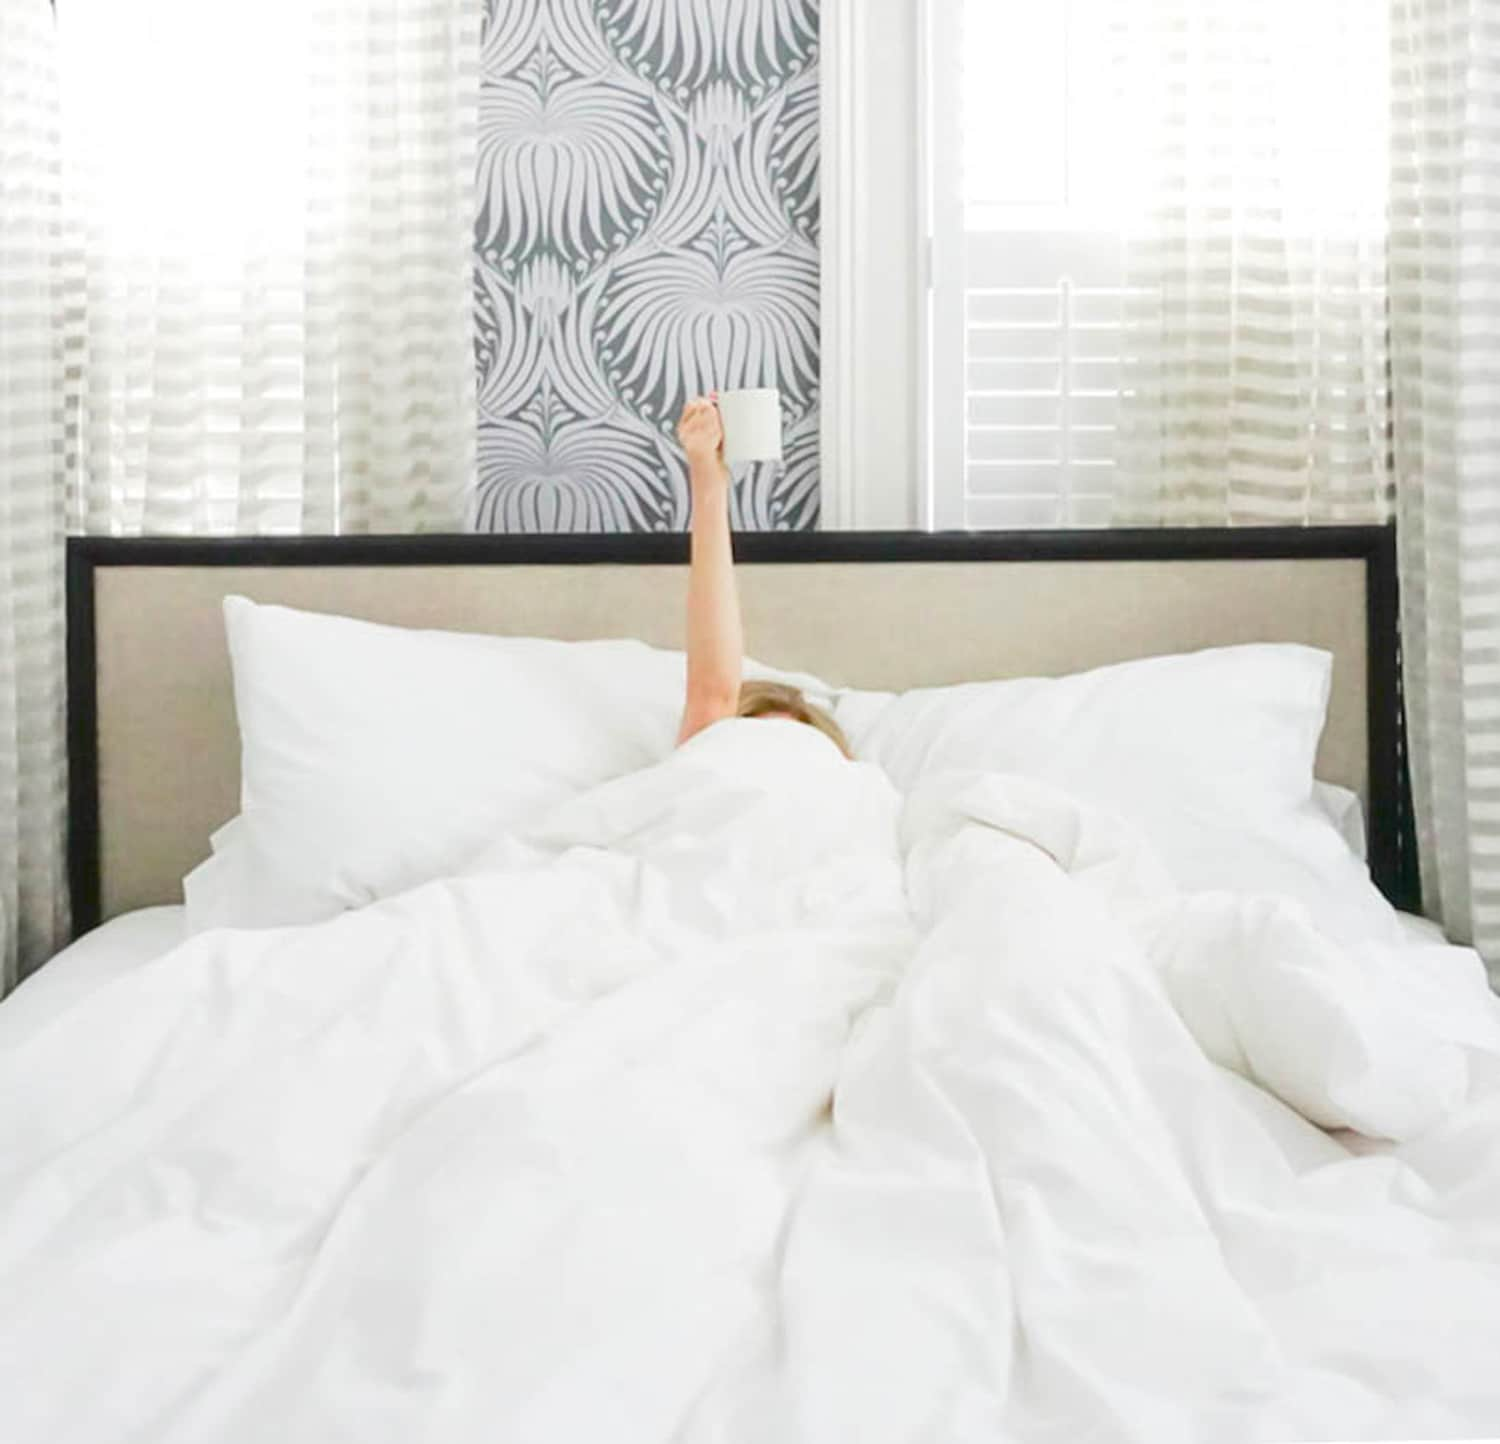 Ashley Brooke of Ashley Brooke Designs has coffee in bed at 86 Cannon in Charleston, SC